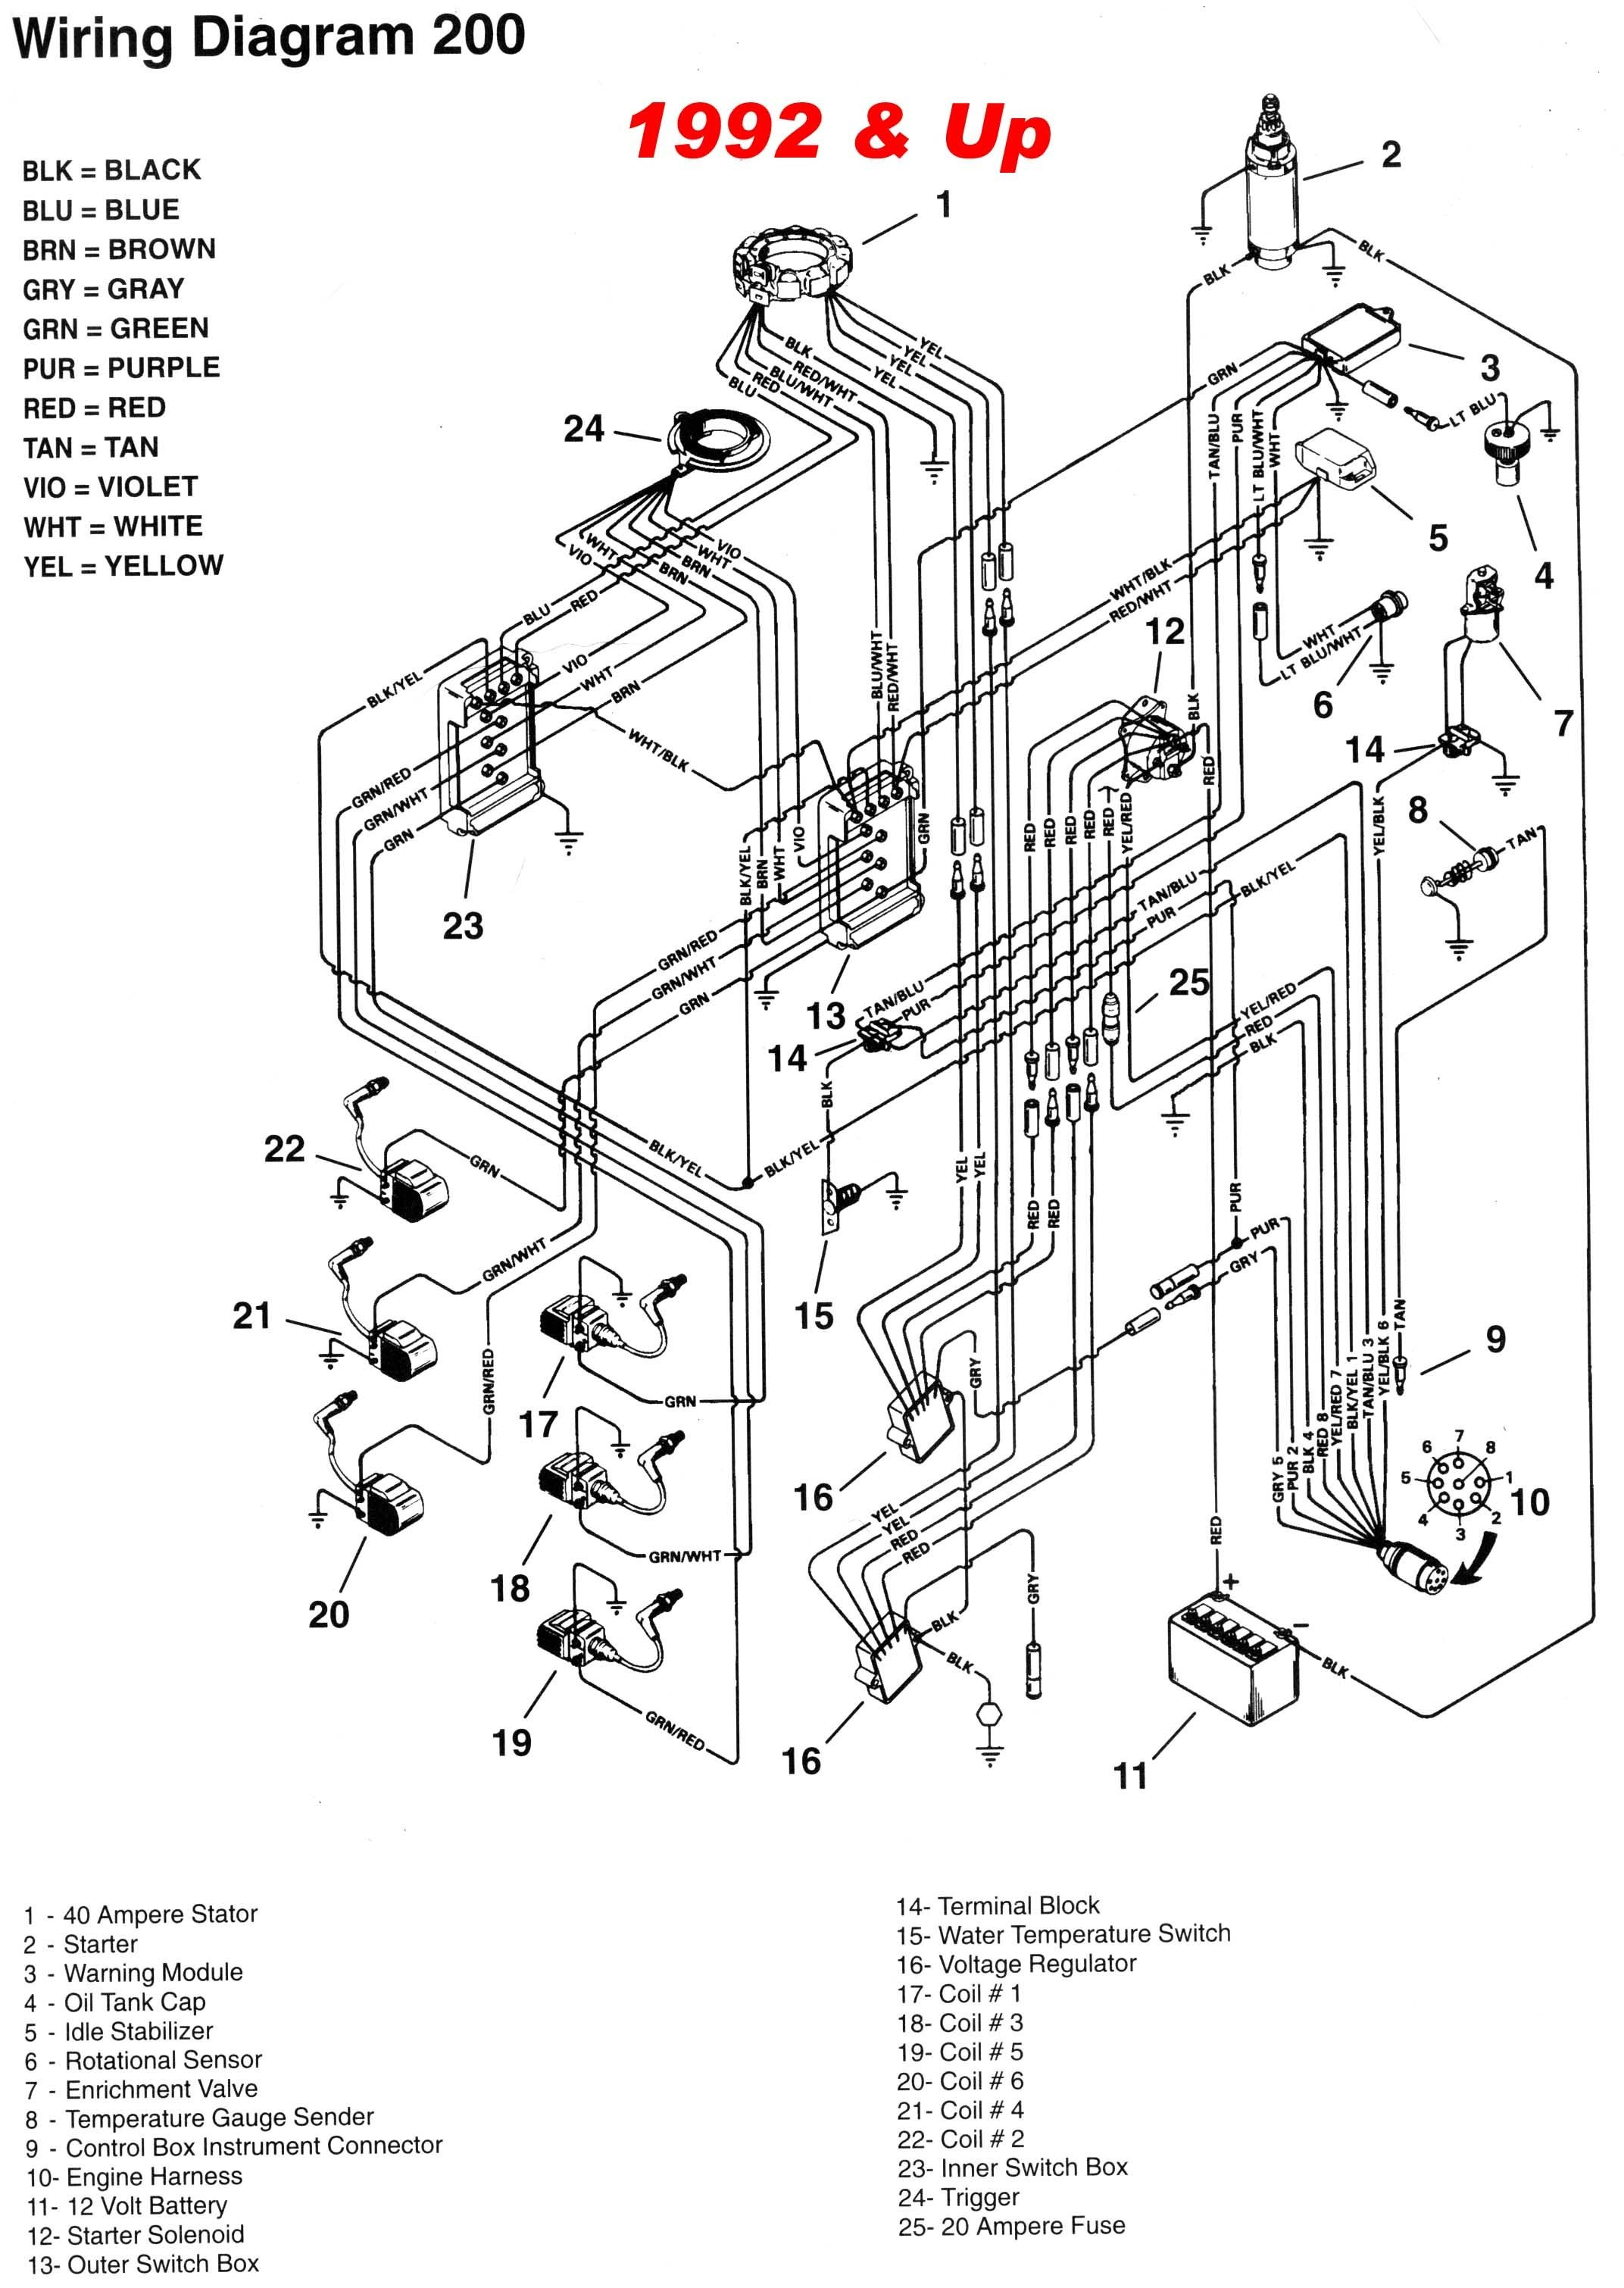 Mercury 115 Hp Wiring 51 Mercury Wiring Diagram Of Mercury 115 Hp Wiring Mercury Lower Unit Wiring Diagram Wiring Diagram Data